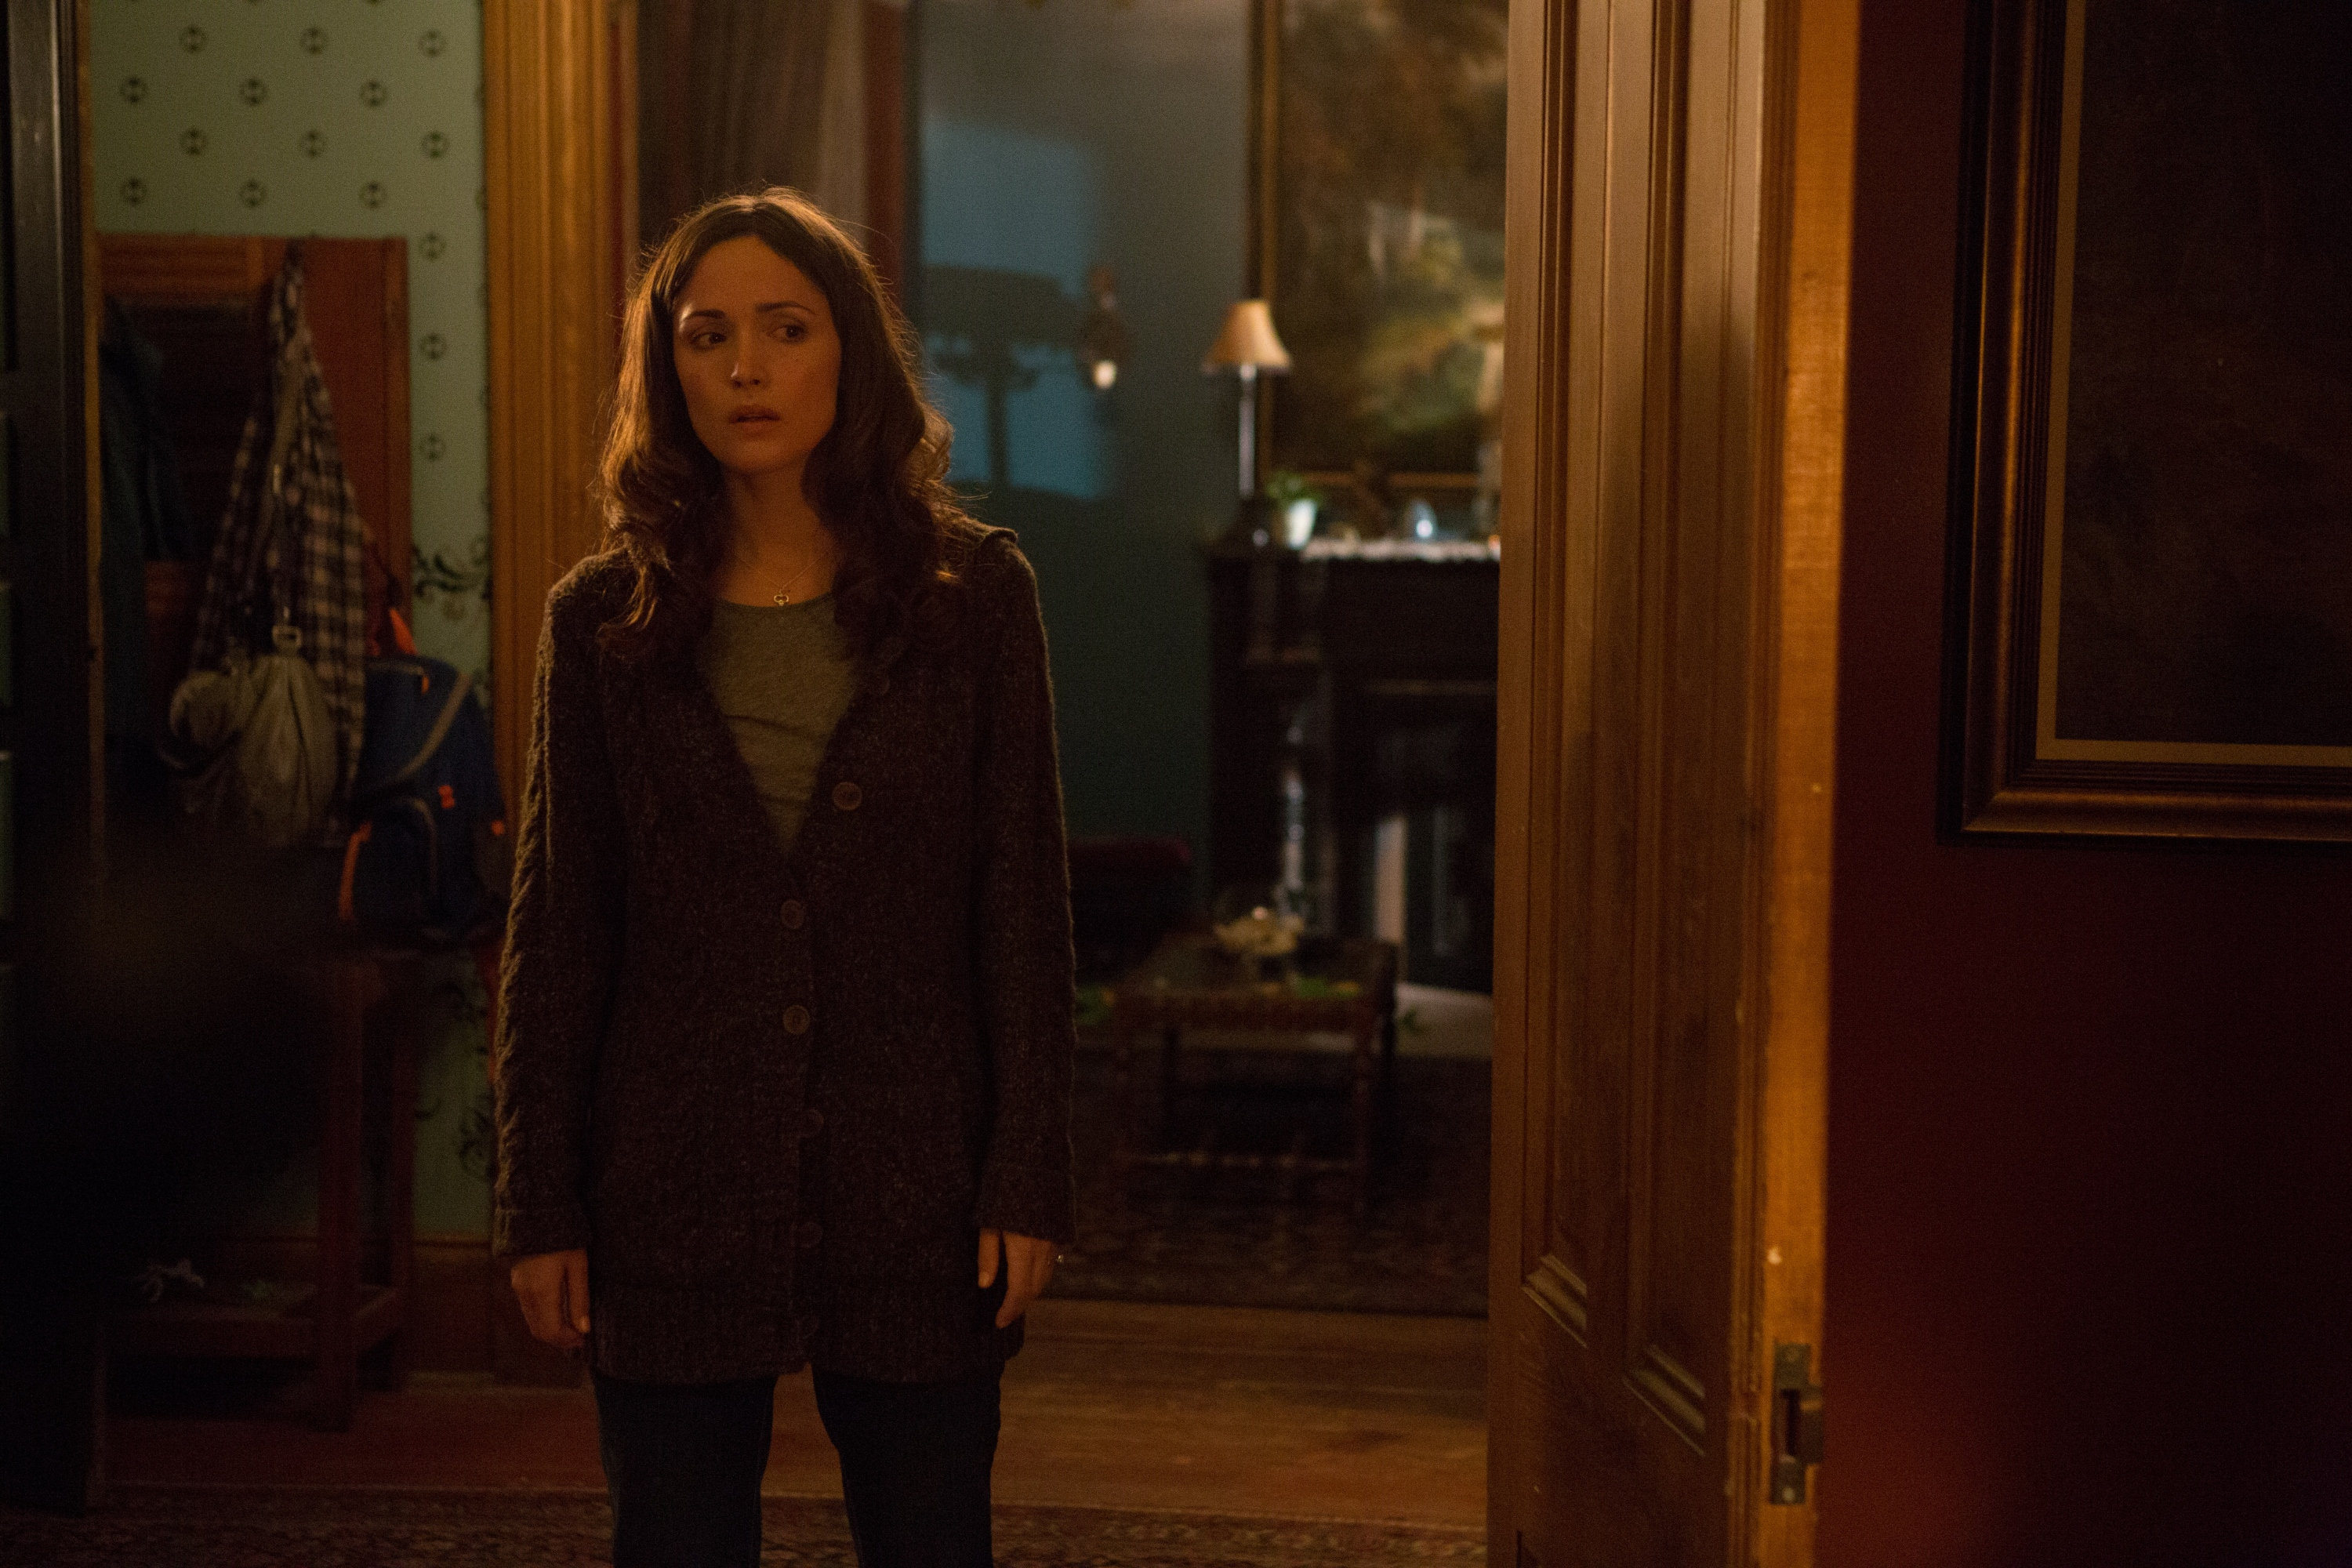 'Insidious 2′ High-Res Image Gallery: Spot the Ghosts